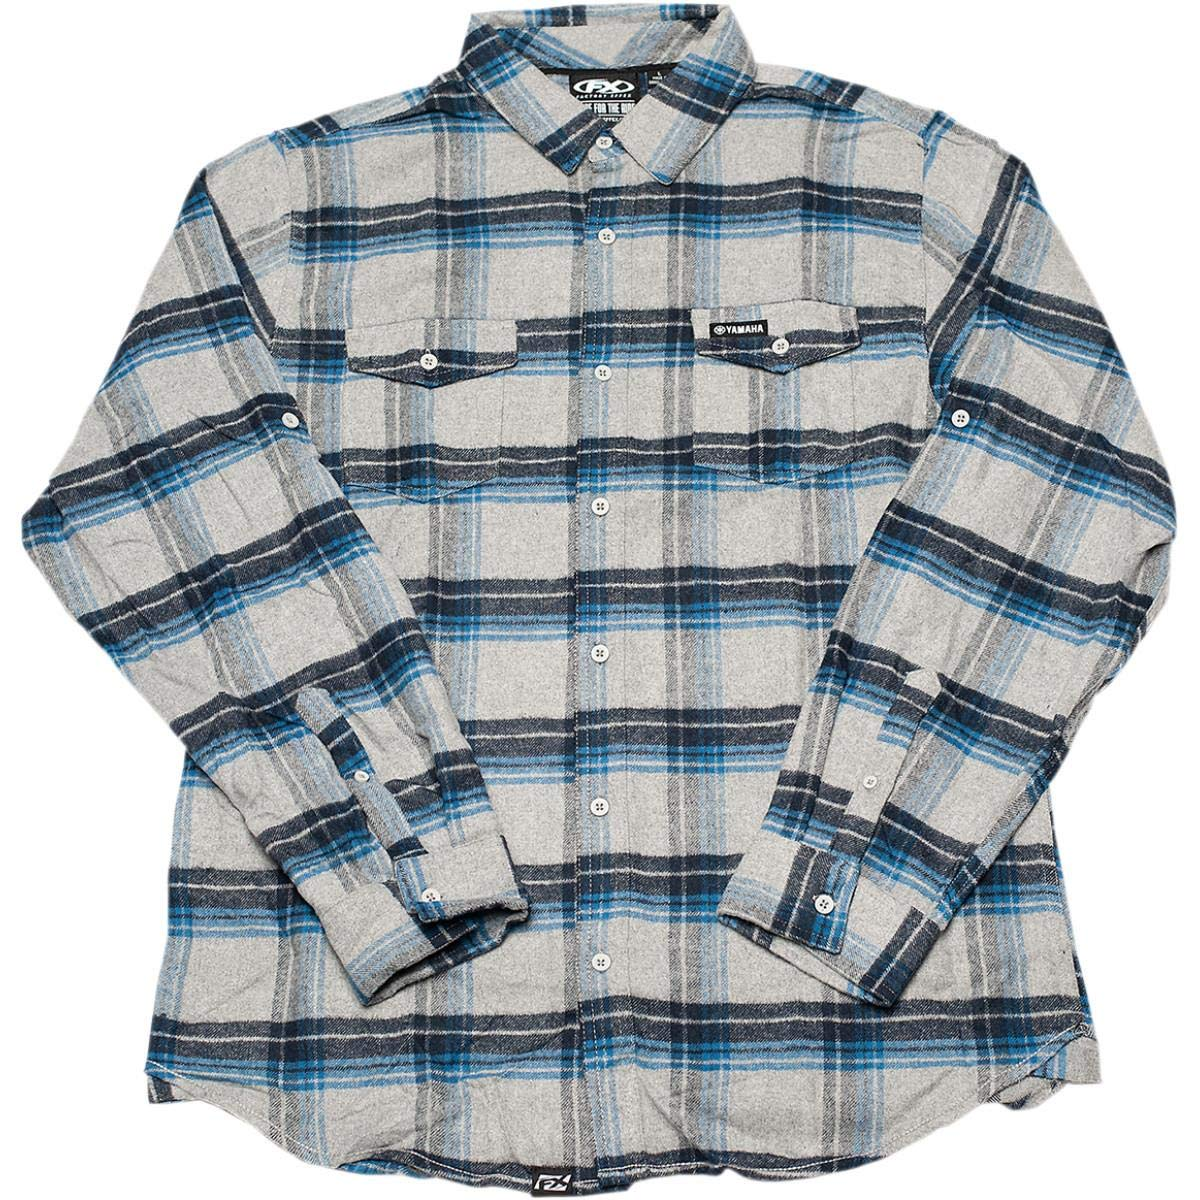 Factory Effex Yamaha Flannel Shirt Blue/Gray (Gray, XX-Large) by Factory Effex